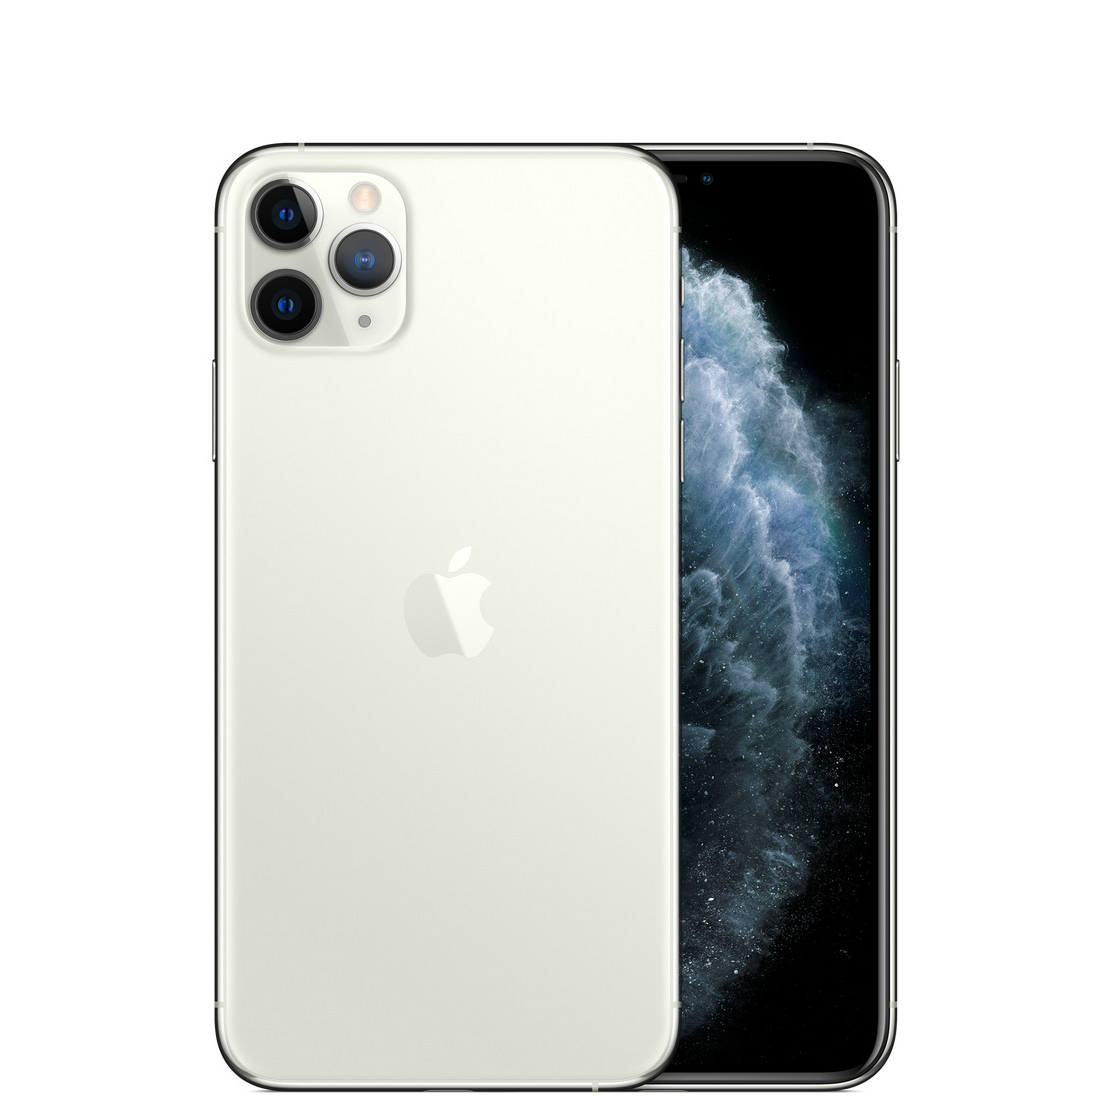 Image of Apple iPhone 11 Pro Max 256GB A2220 Dual Sim with Tempered Glass Screen Protector - Silver